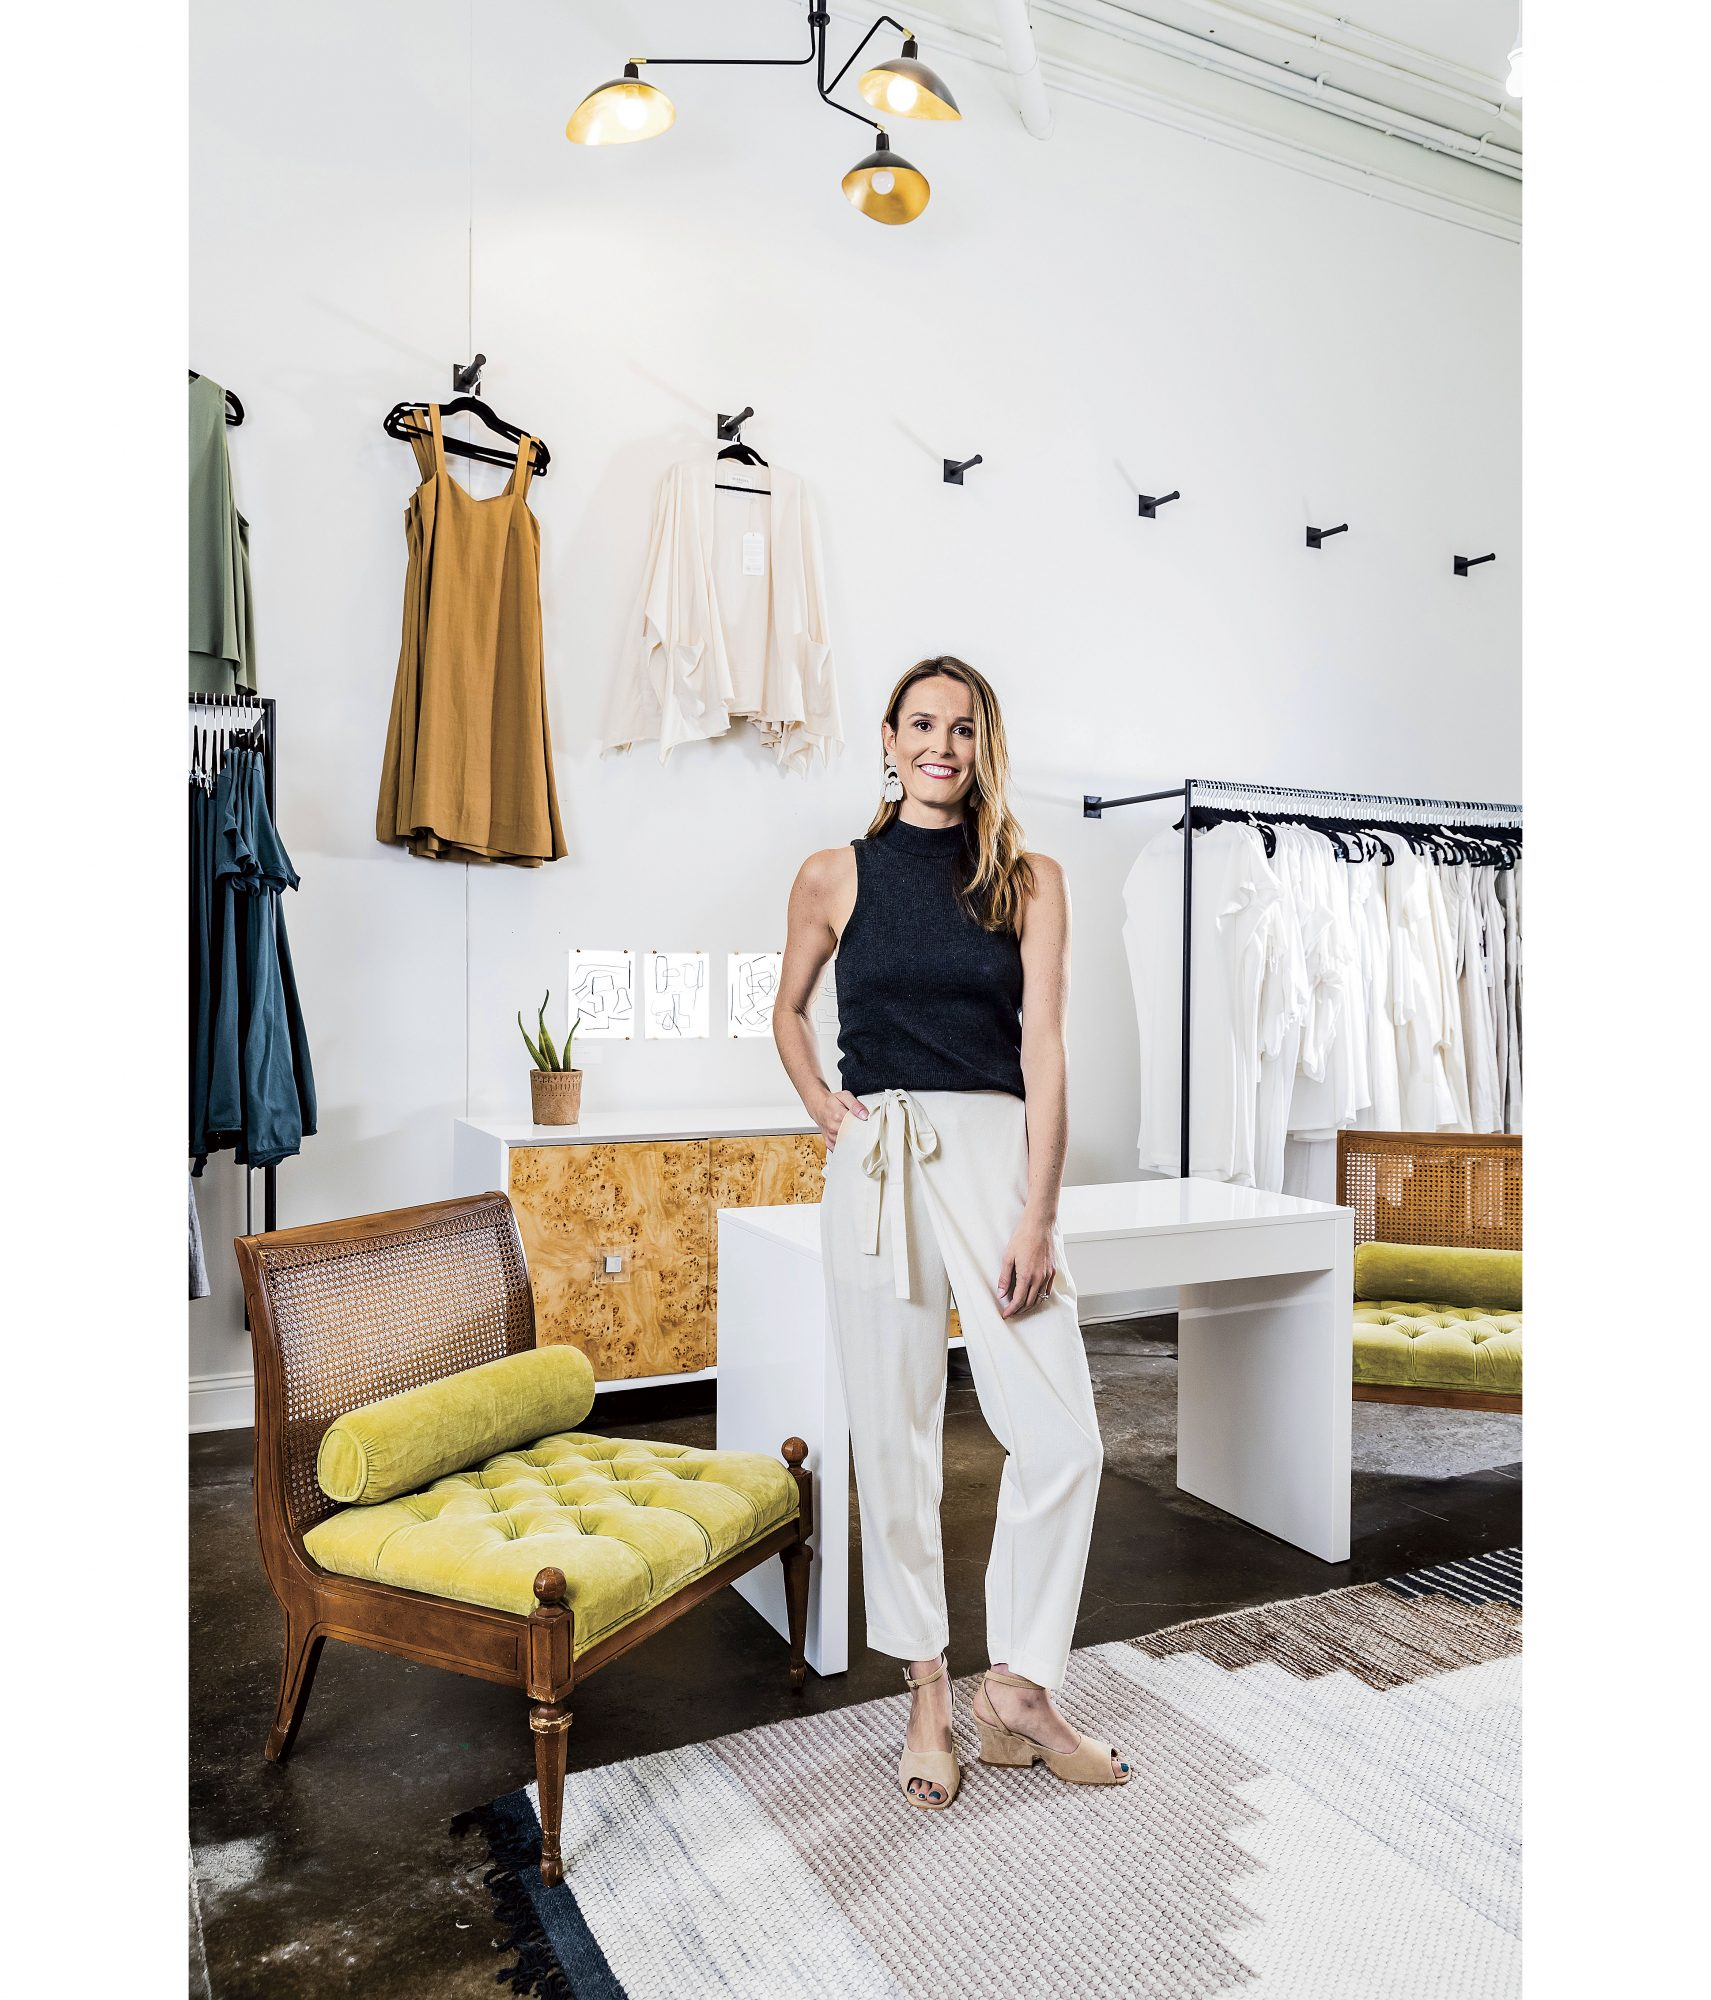 Meet the Woman Bringing Style with Purpose to this Birmingham, Alabama Boutique